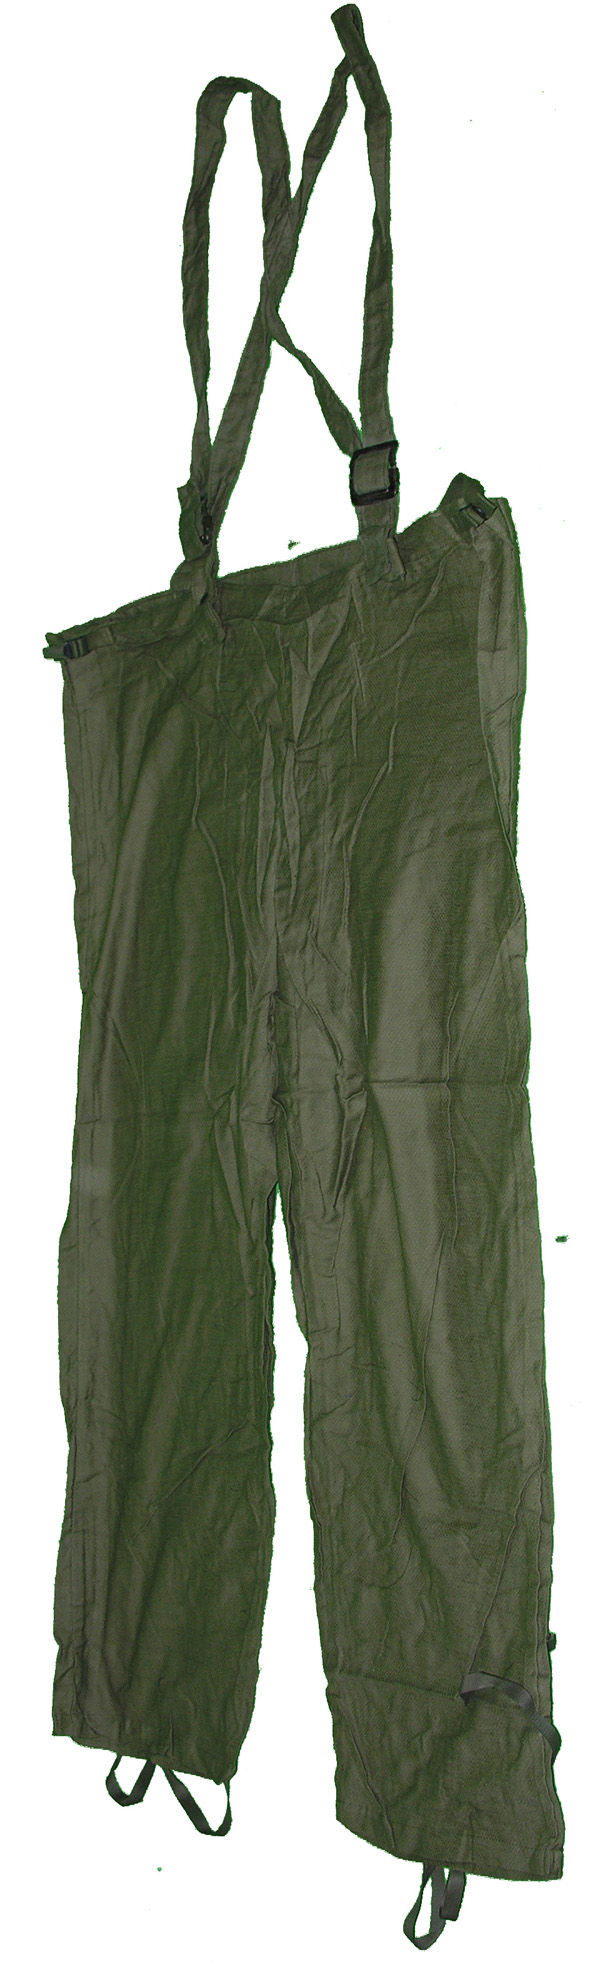 Toxicological Agents Protective Suit Trousers